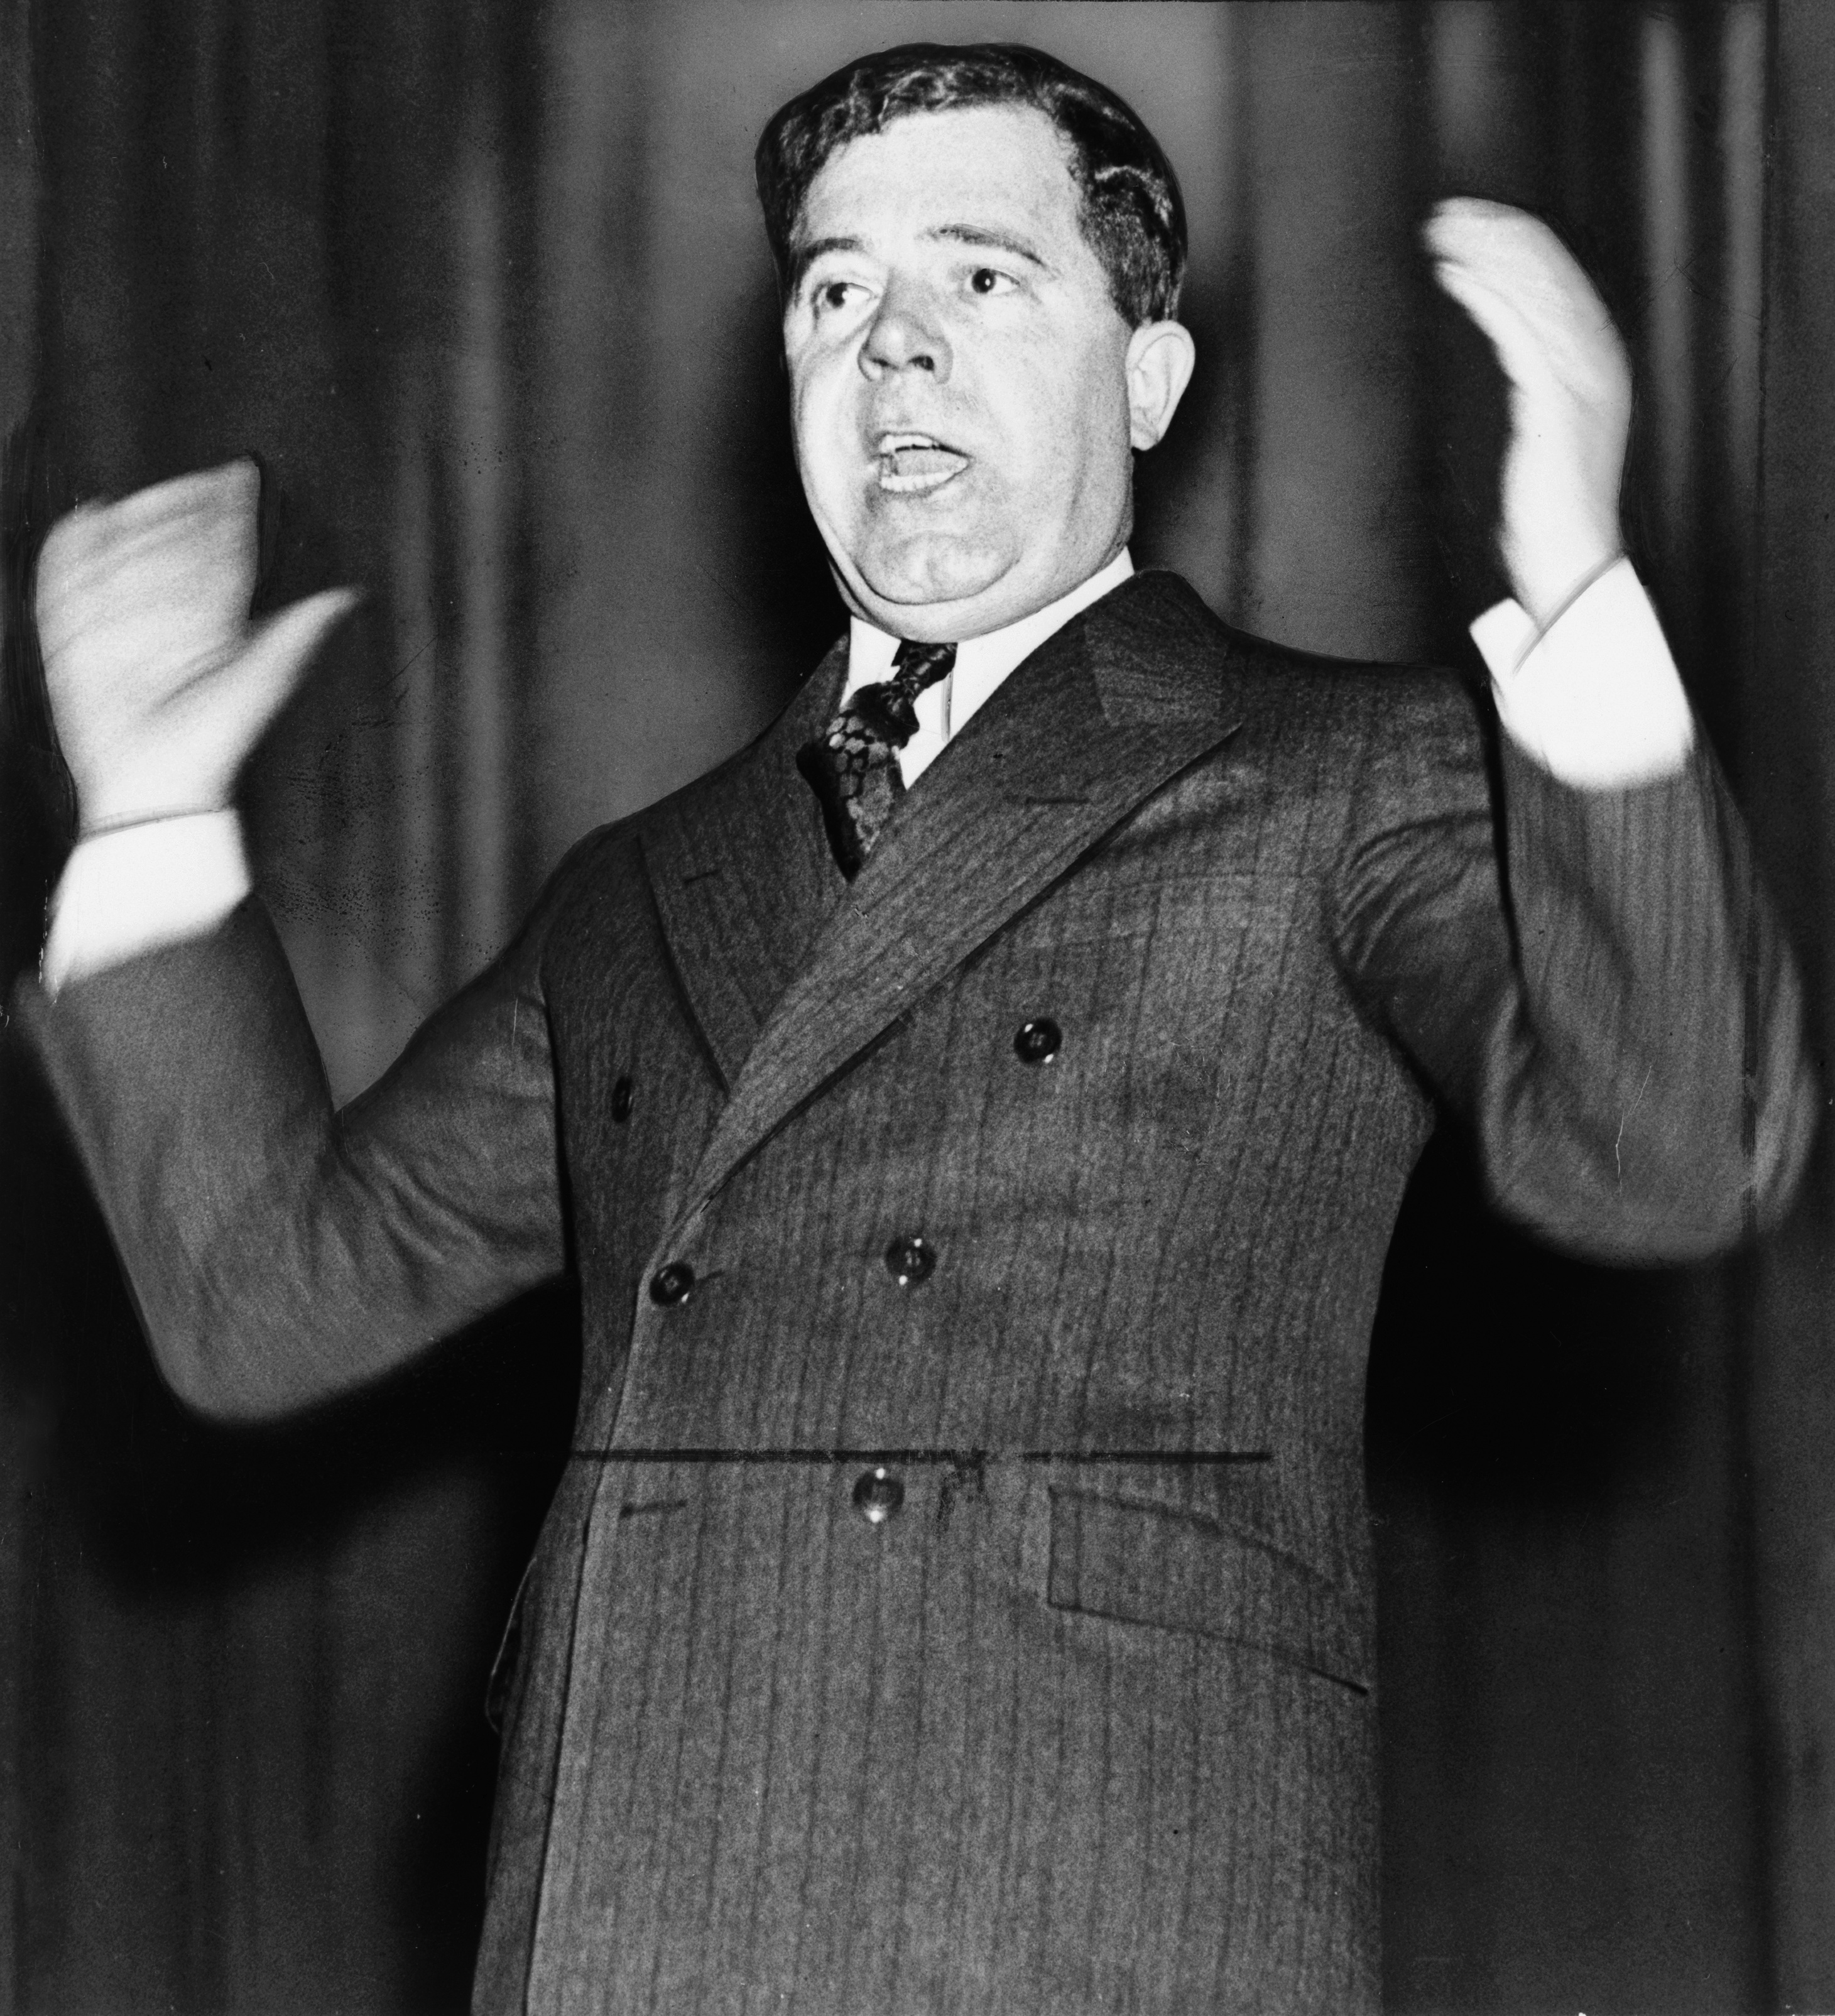 essays on huey p long Huey long proposed a share our wealth plan during the great depression to provide a decent standard of living to all americans by spreading the nation's wealth among.